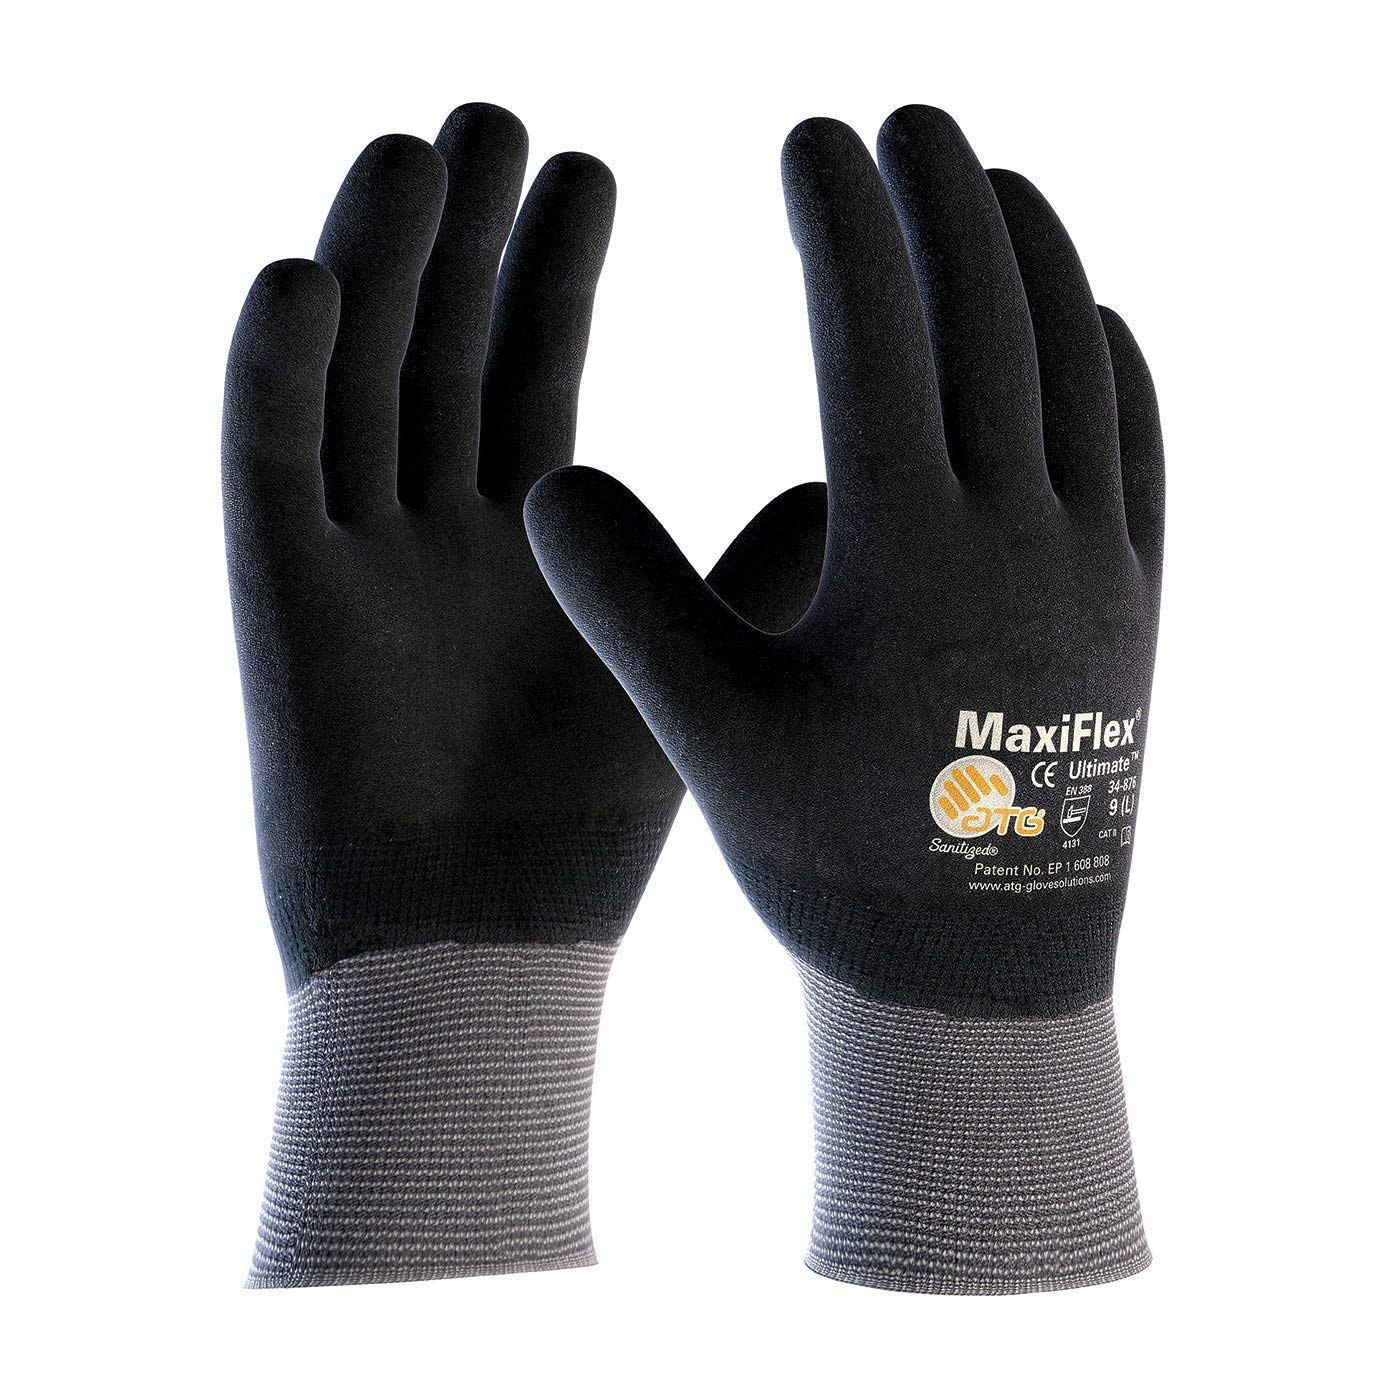 MaxiFlex Ultimate 34-876/L Seamless Knit Nylon/Lycra Glove with Nitrile Coated Micro-Foam Grip on Full Hand - 12 pairs